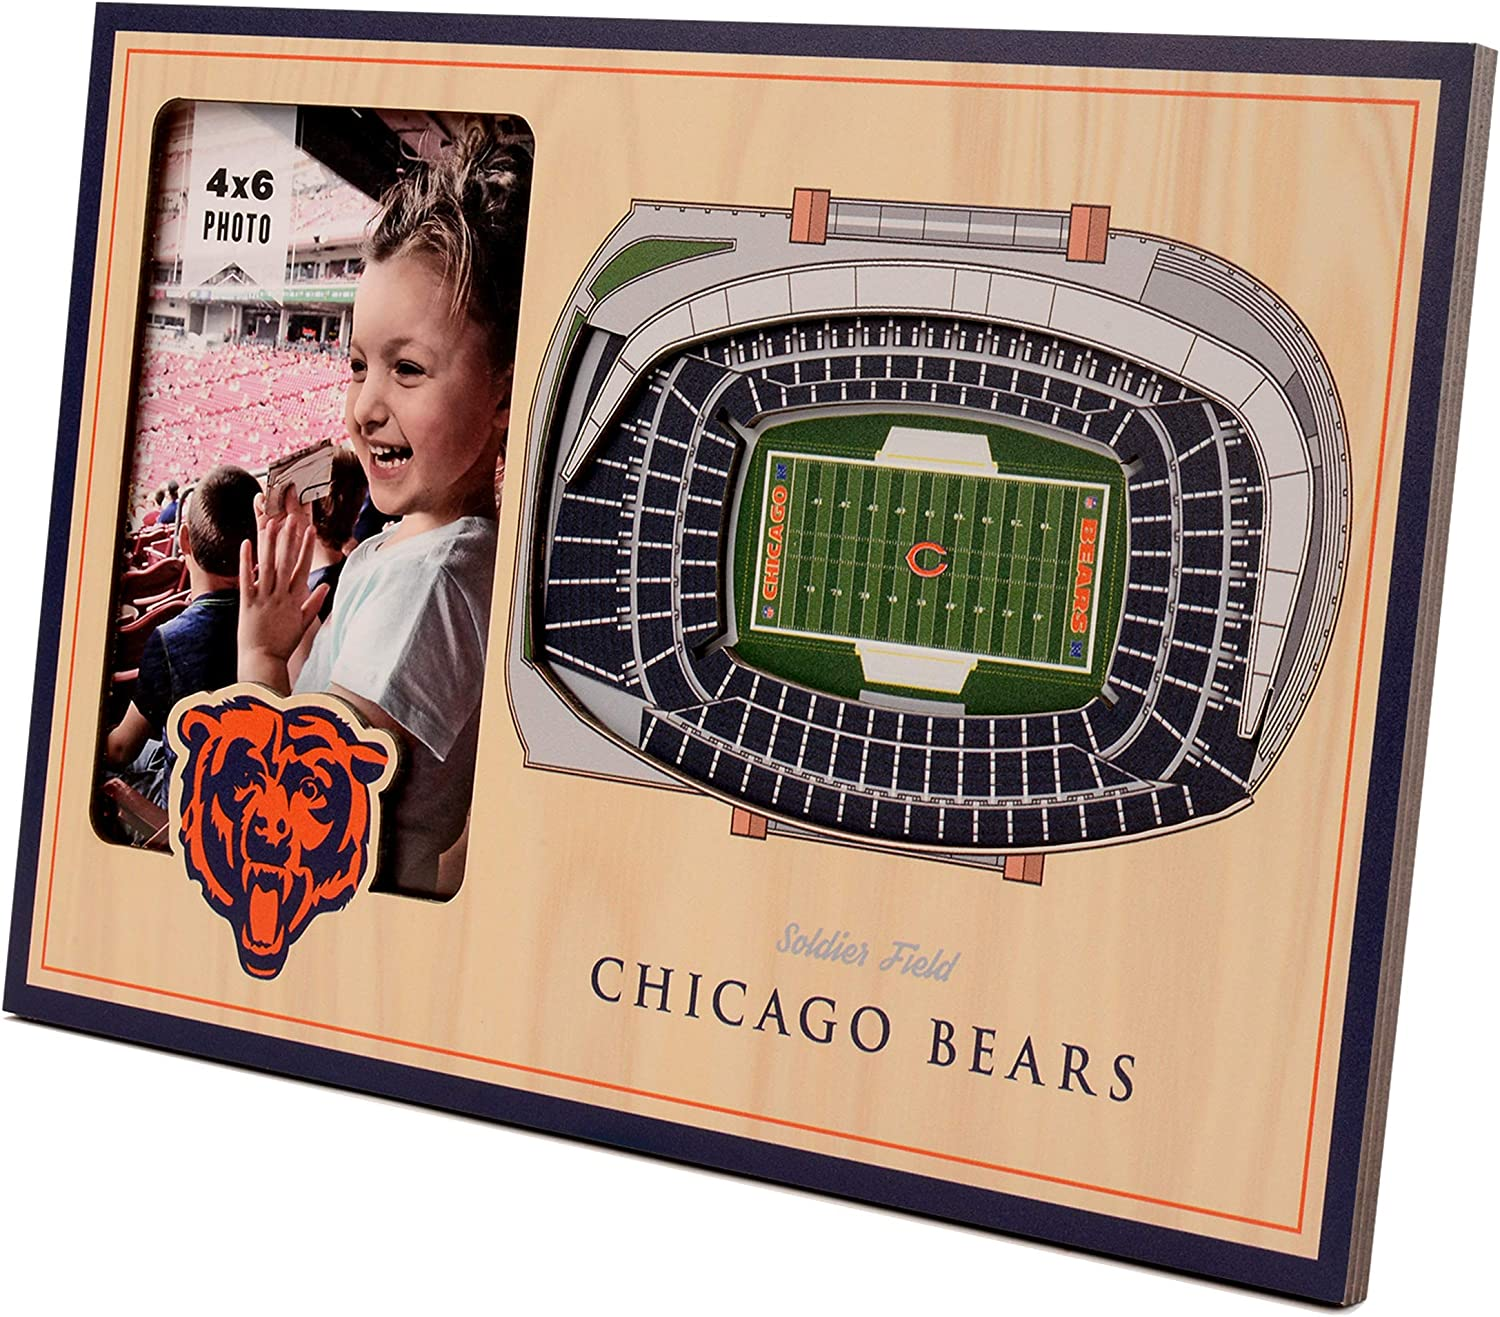 NFL New color Chicago Bears 3D StadiumViews Cheap SALE Start Picture Frame